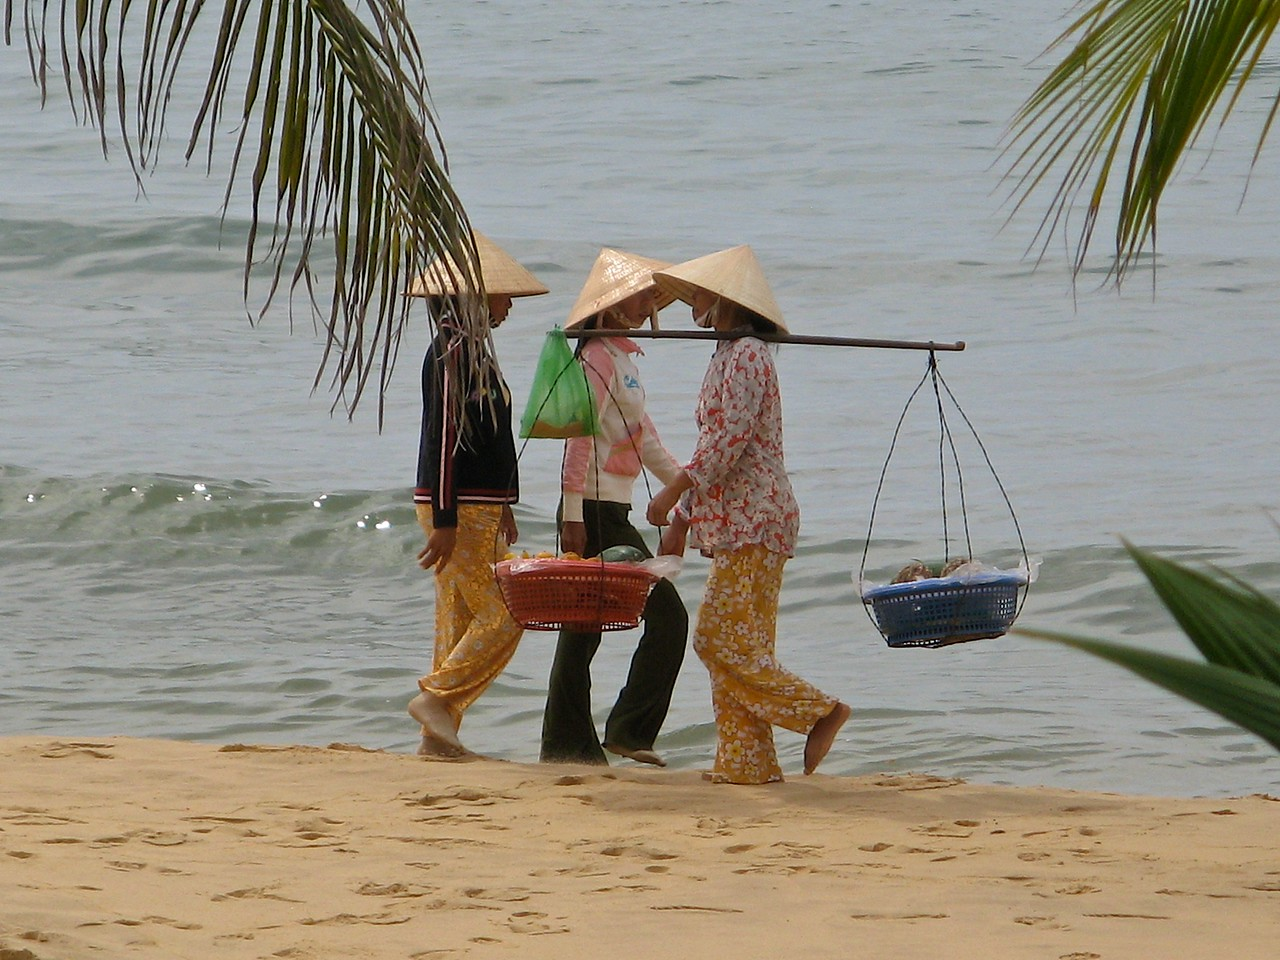 Many locals walk up and down the beach during the hot days.